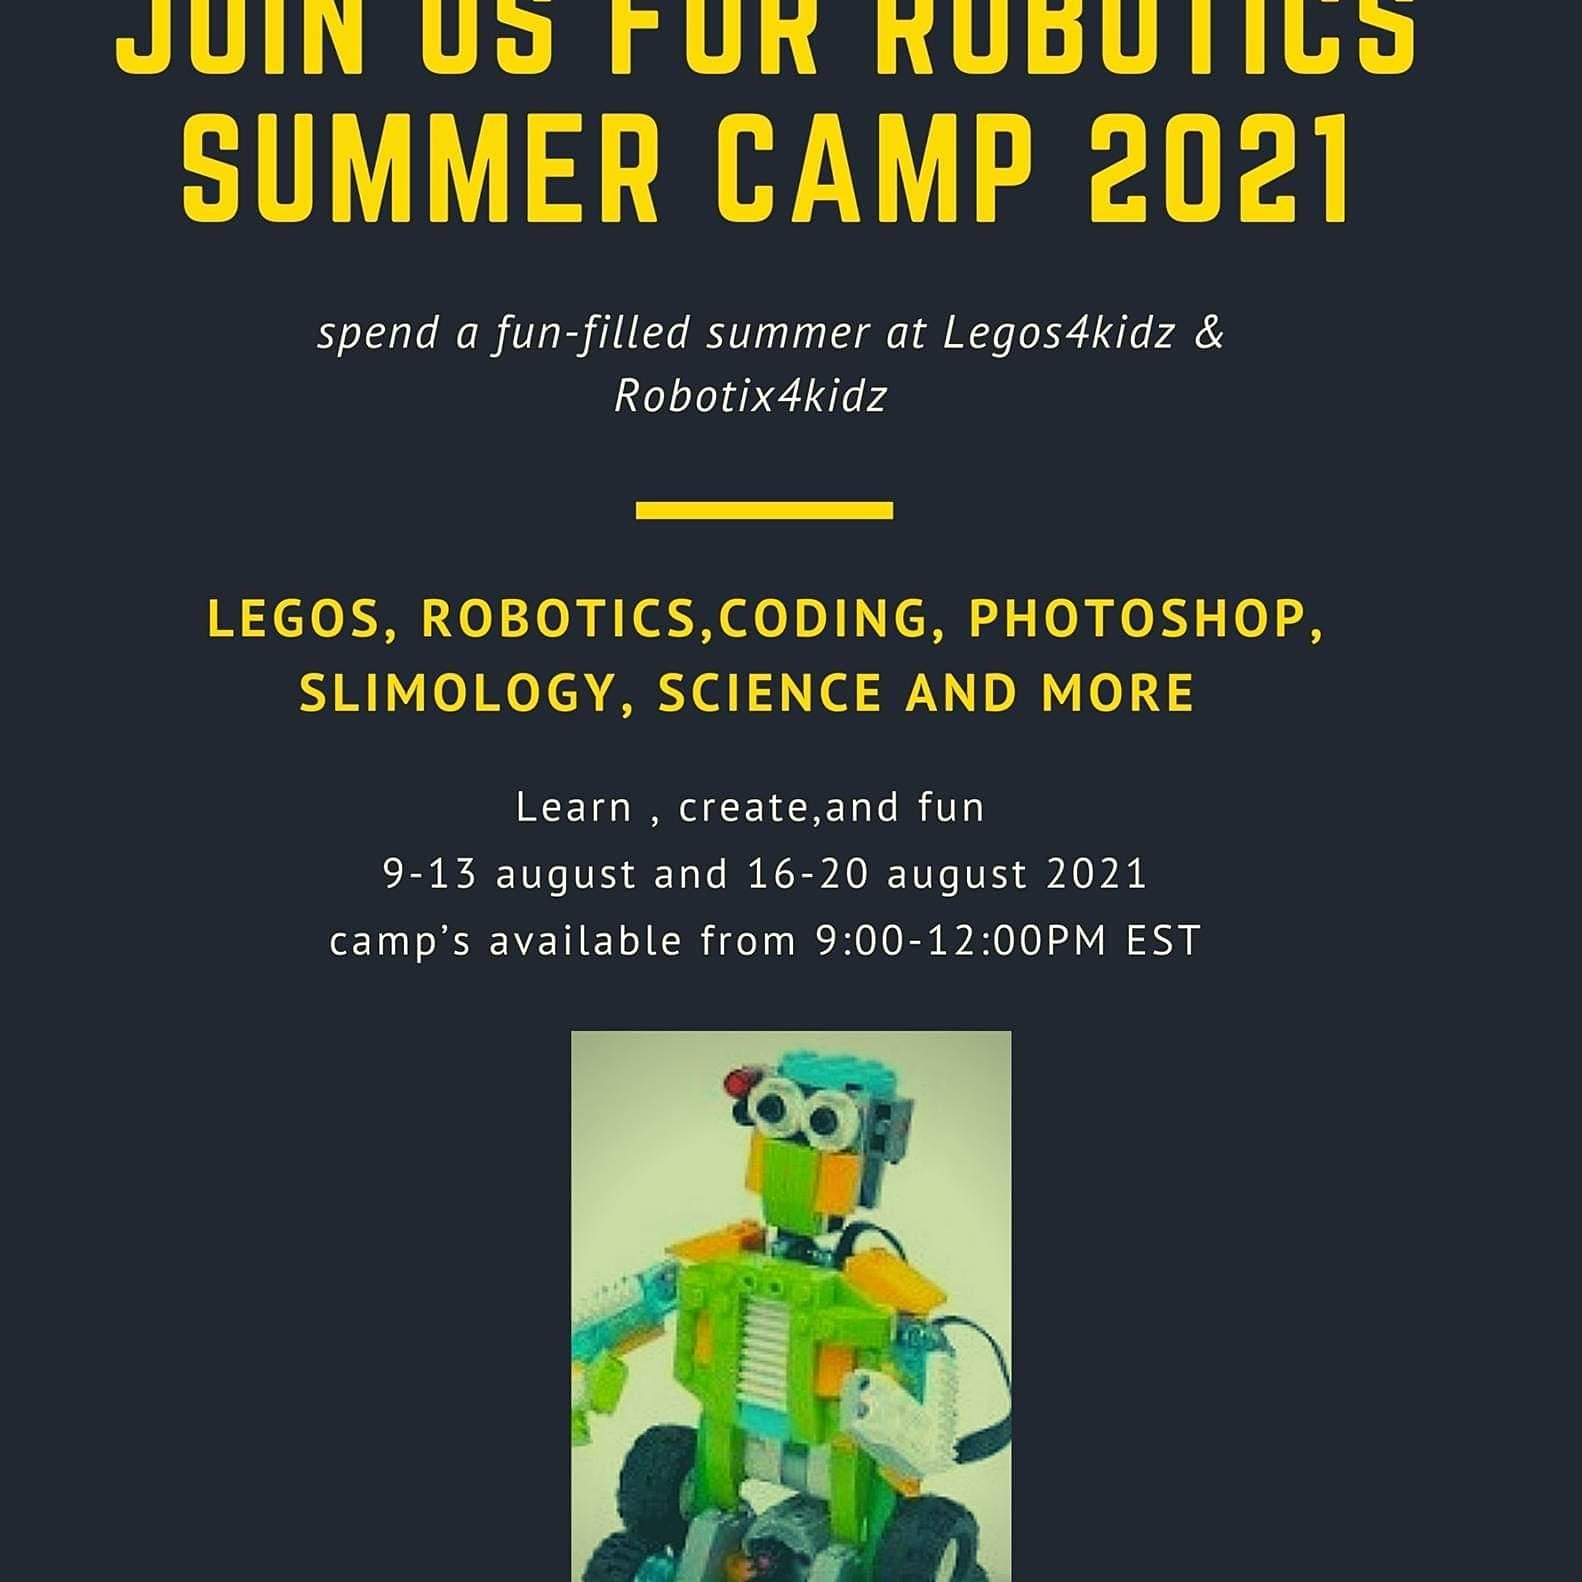 Lego camp ages 4-7/8-12